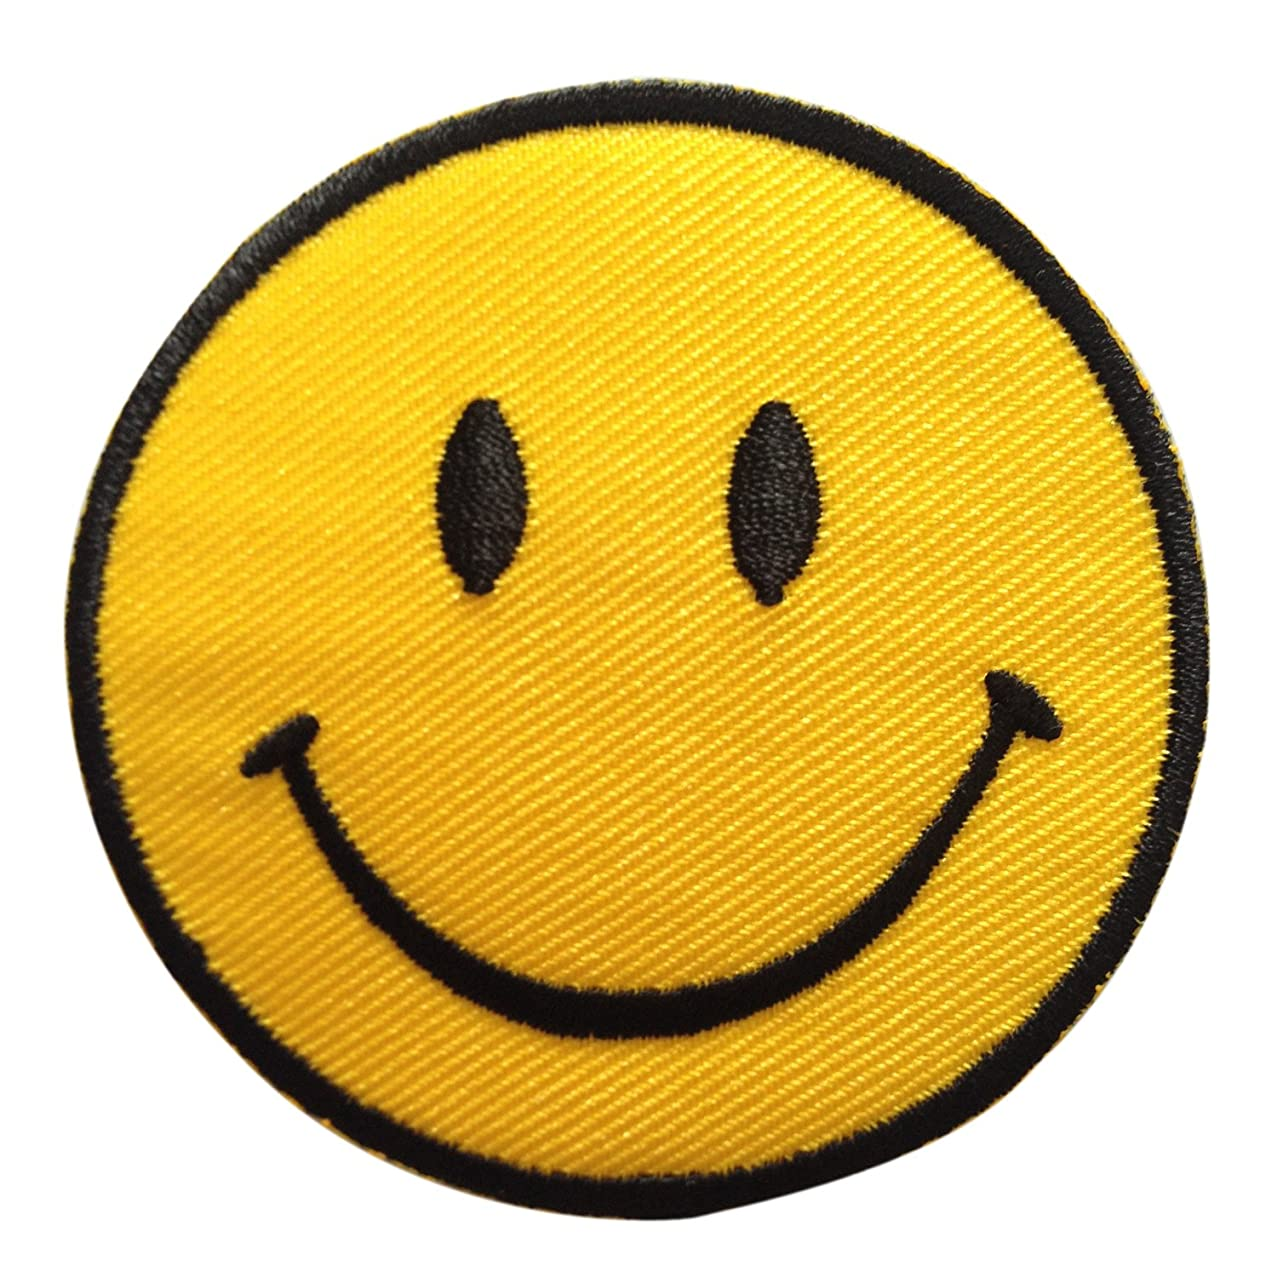 Smiley Happy Smile Face Yellow Iron on Patches Embroidered 3 X 3 Inches 1 Peice Per Order rjzjqifrqv022